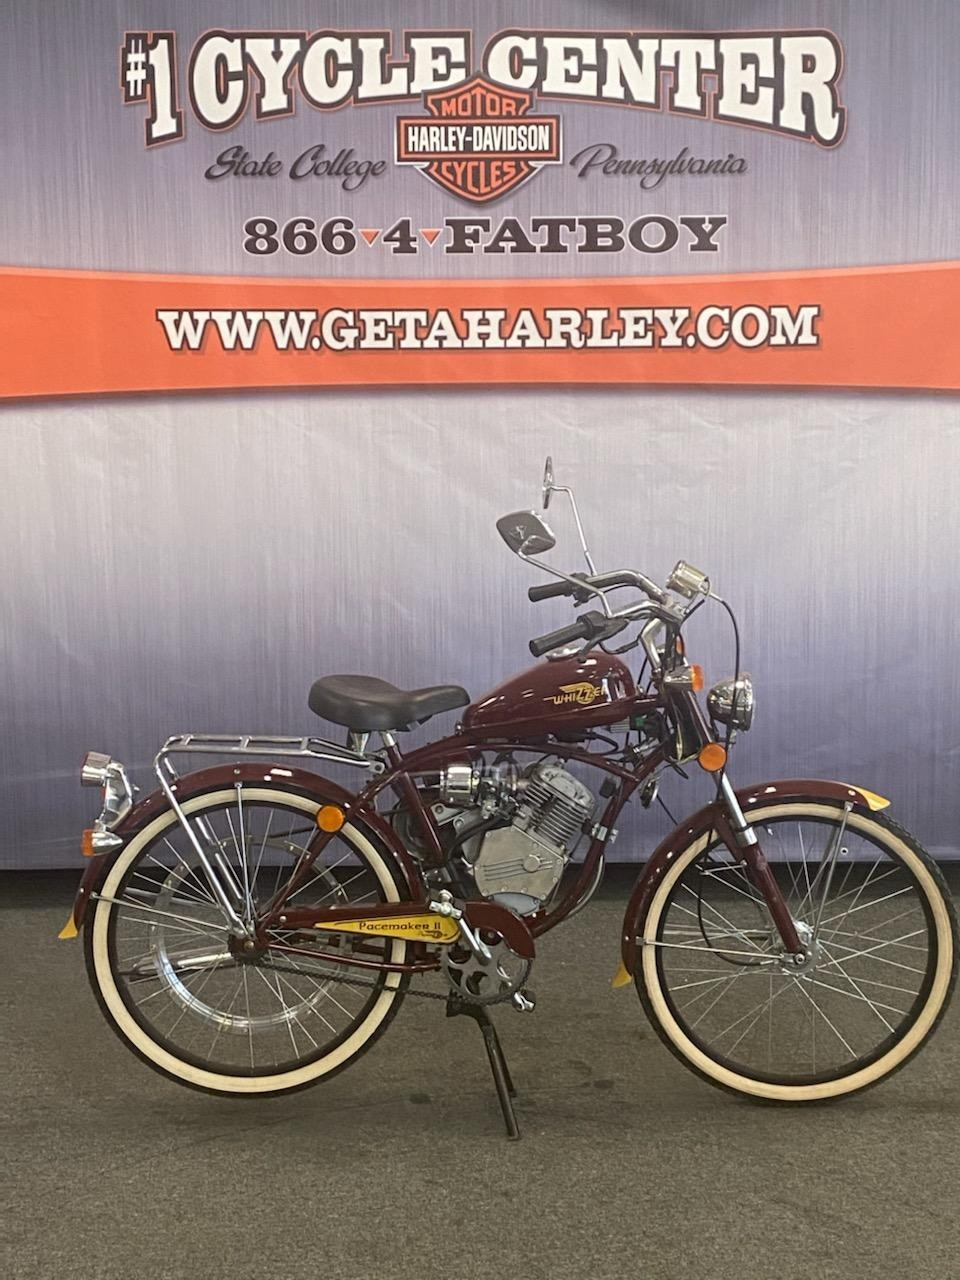 2002 WHIZZR WHIZZER at #1 Cycle Center Harley-Davidson